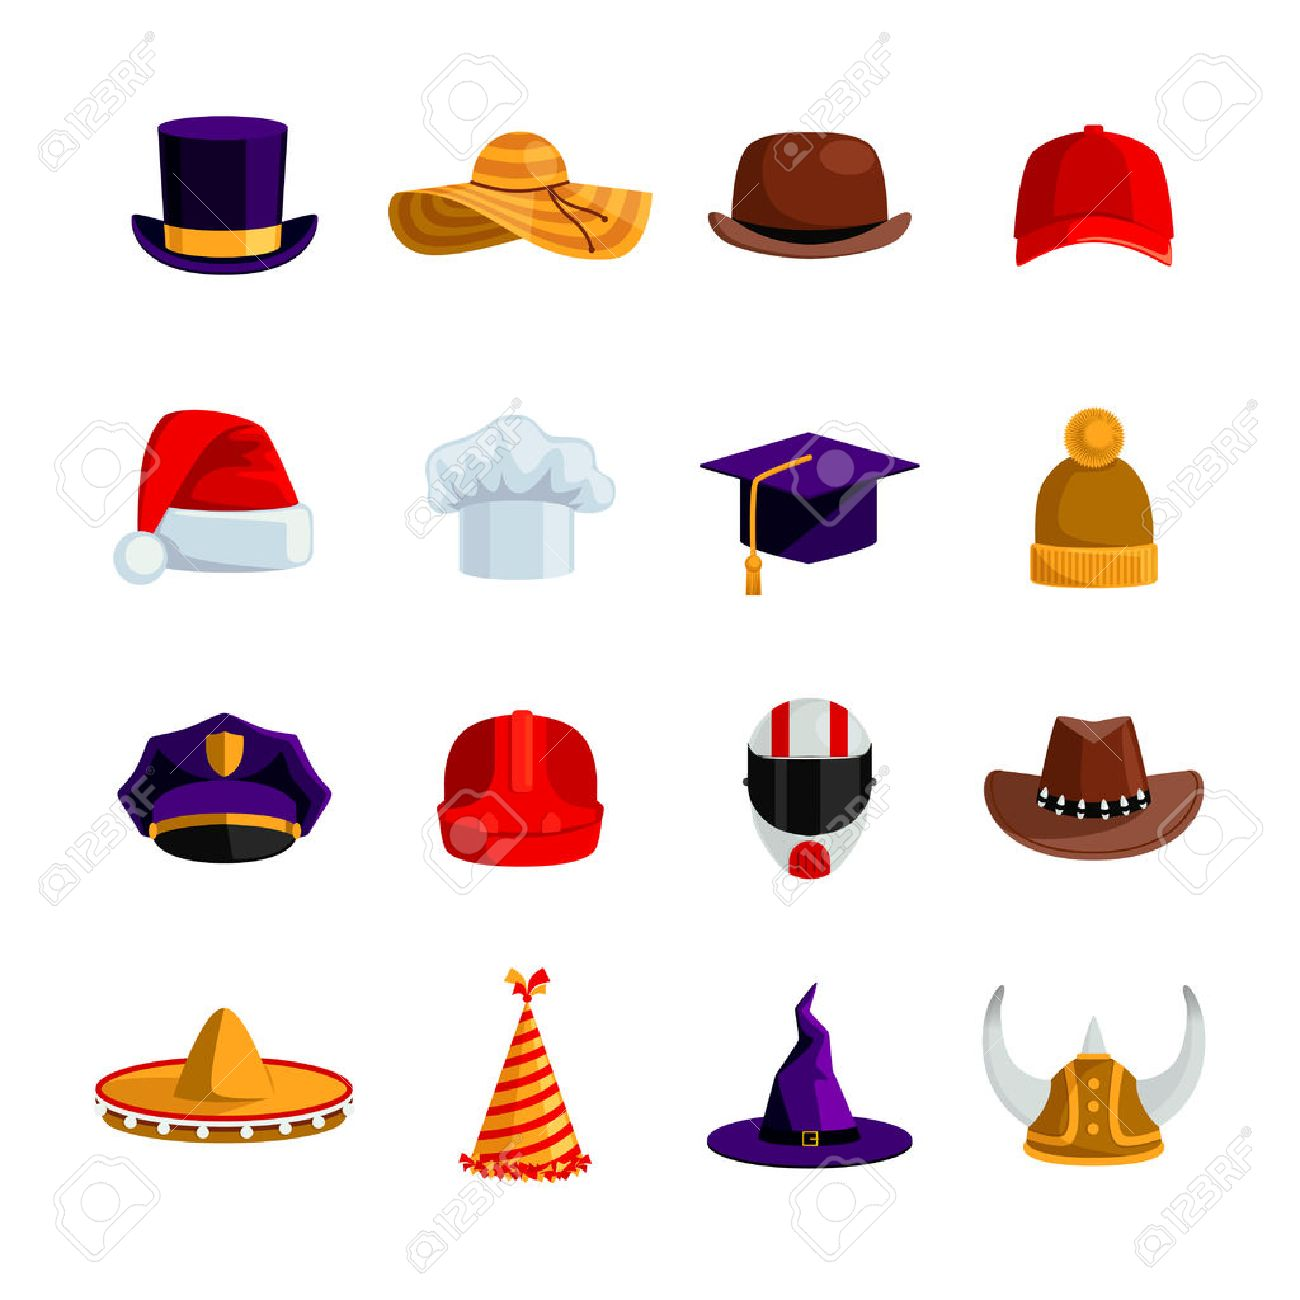 Hats and caps flat color icons set of sombrero bowler square academic hat baseball cap straw hat santa claus and clown caps isolated vector illustration Stock Vector - 51757451